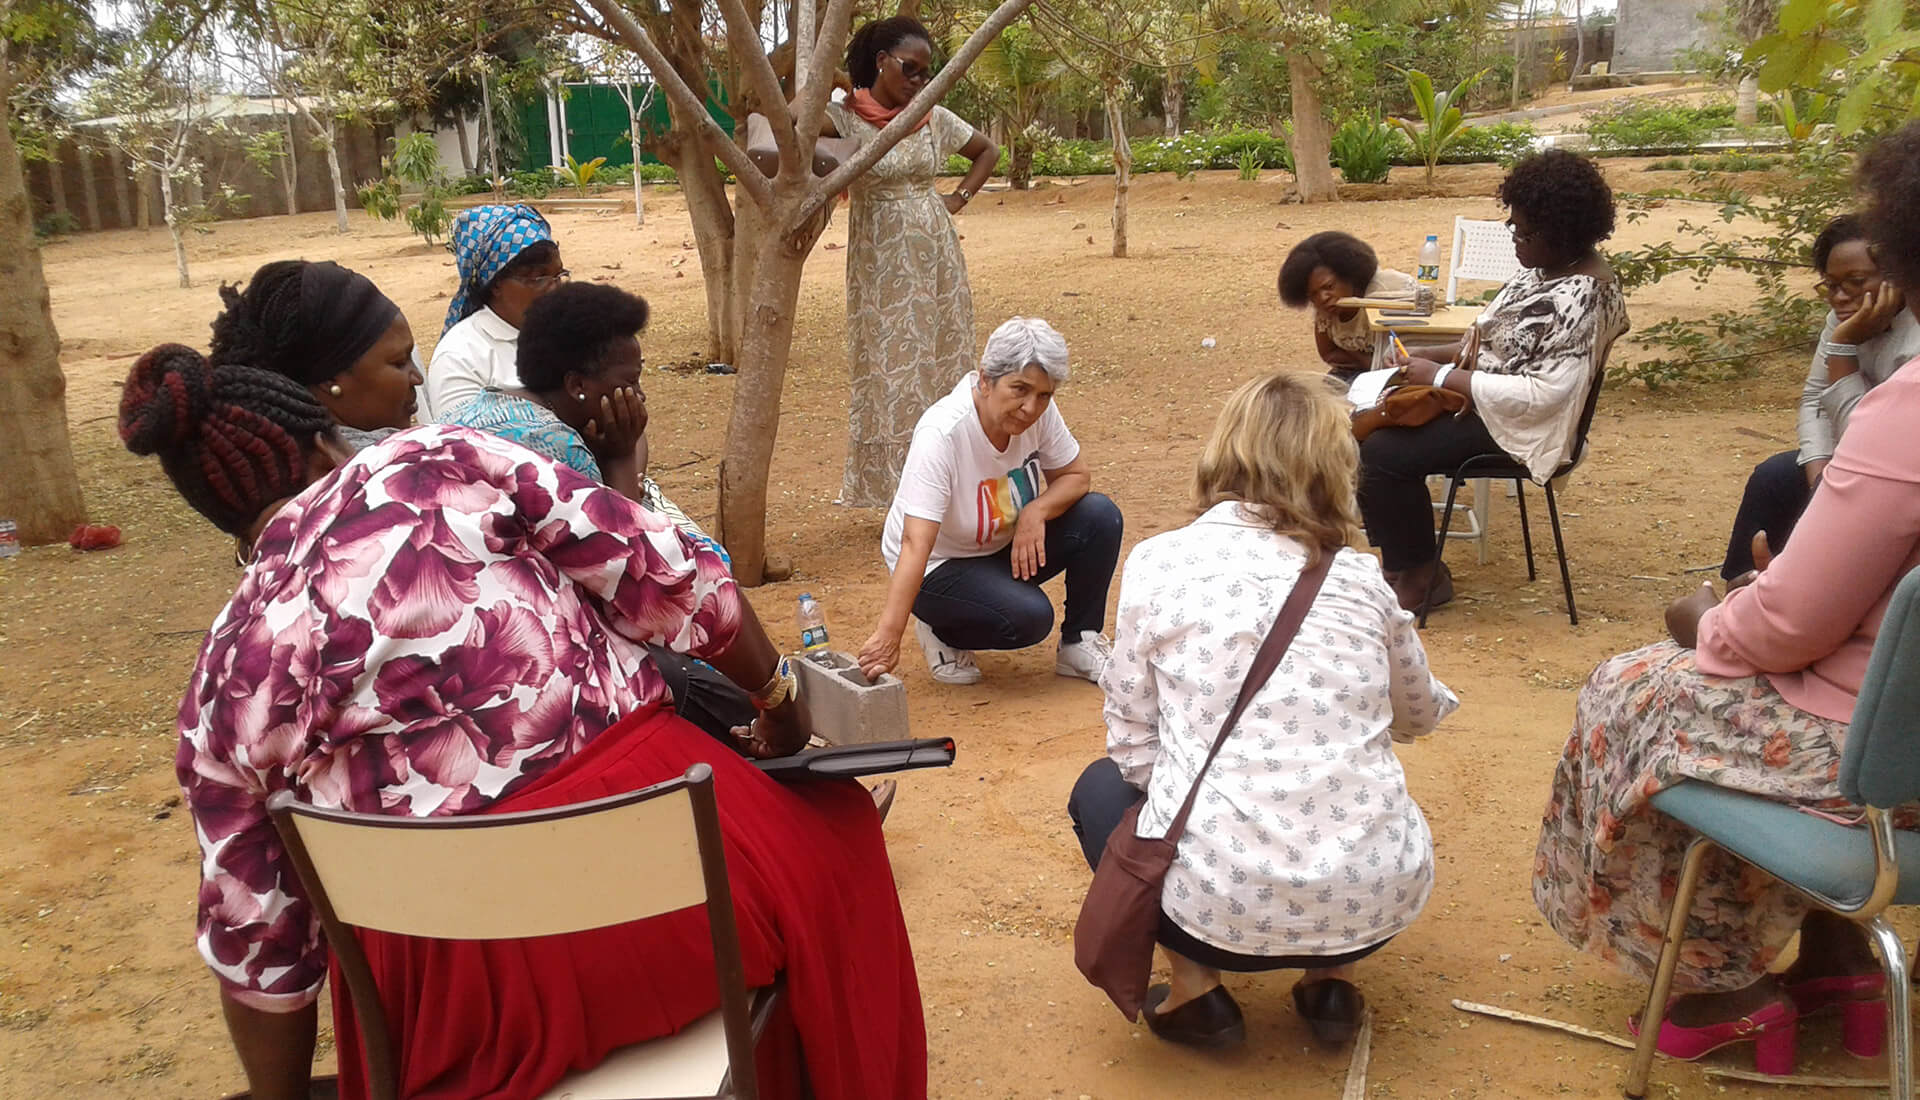 Stella Smith conducts a workshop in Angola